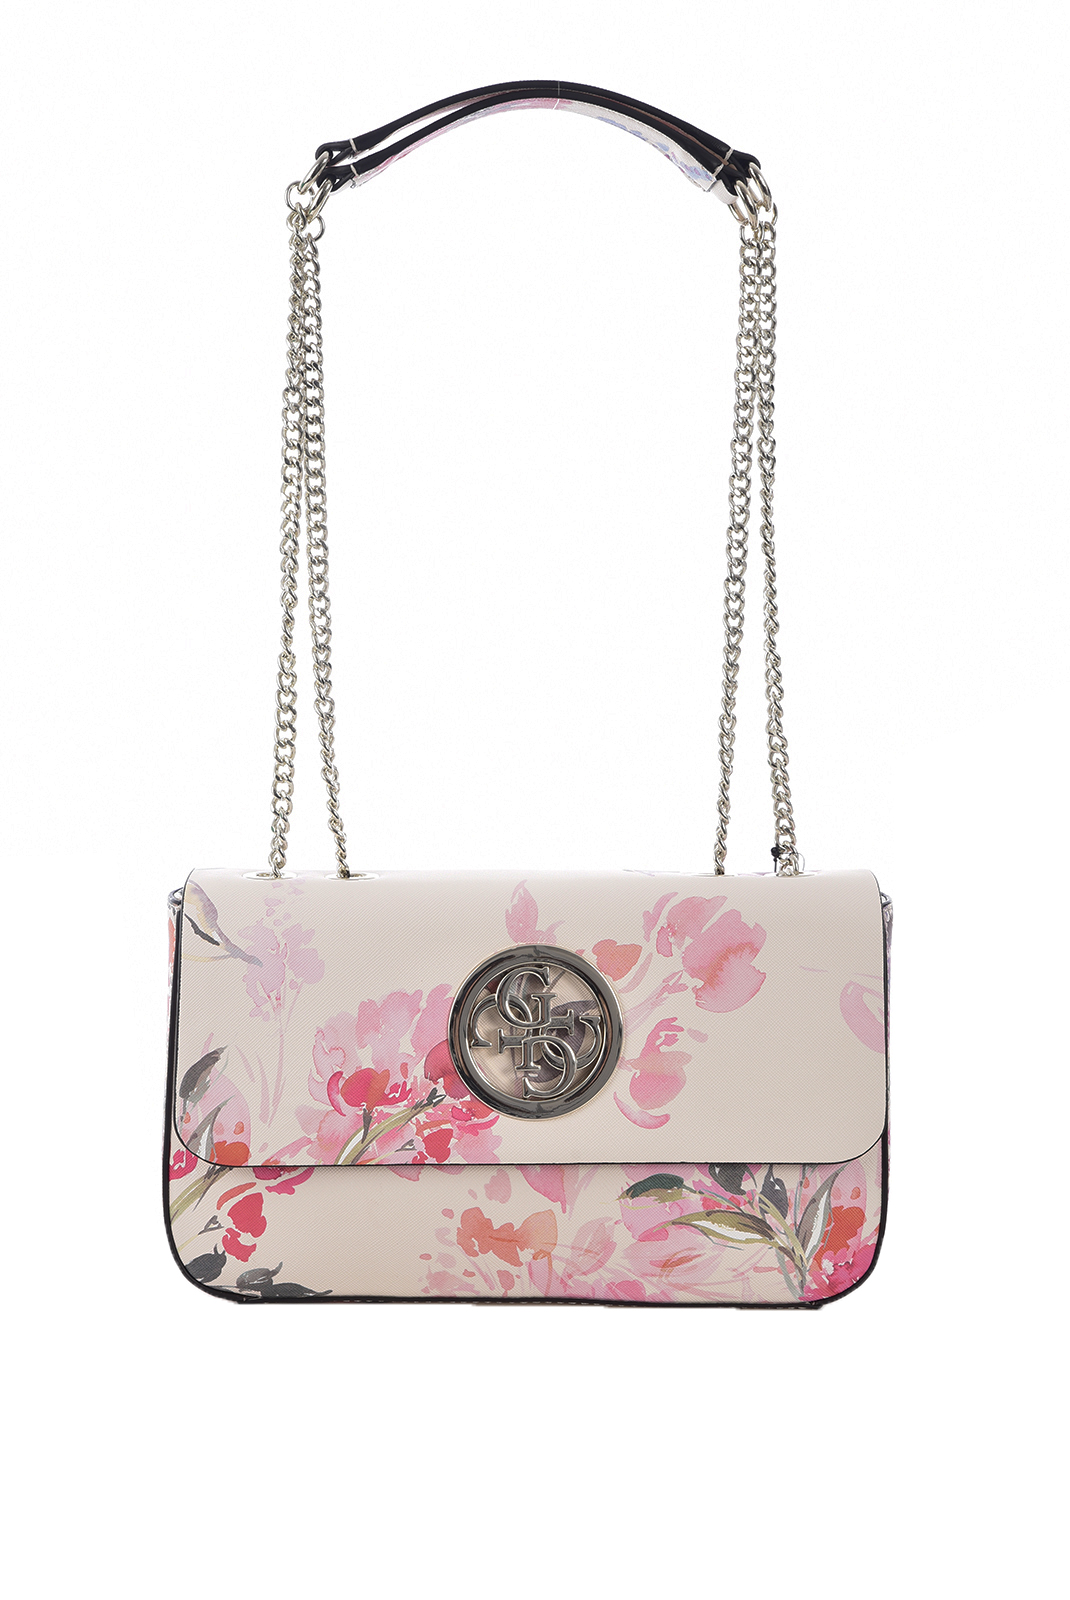 Sacs à Main  Guess jeans HWEF71 86210 Open road PINK FLORAL